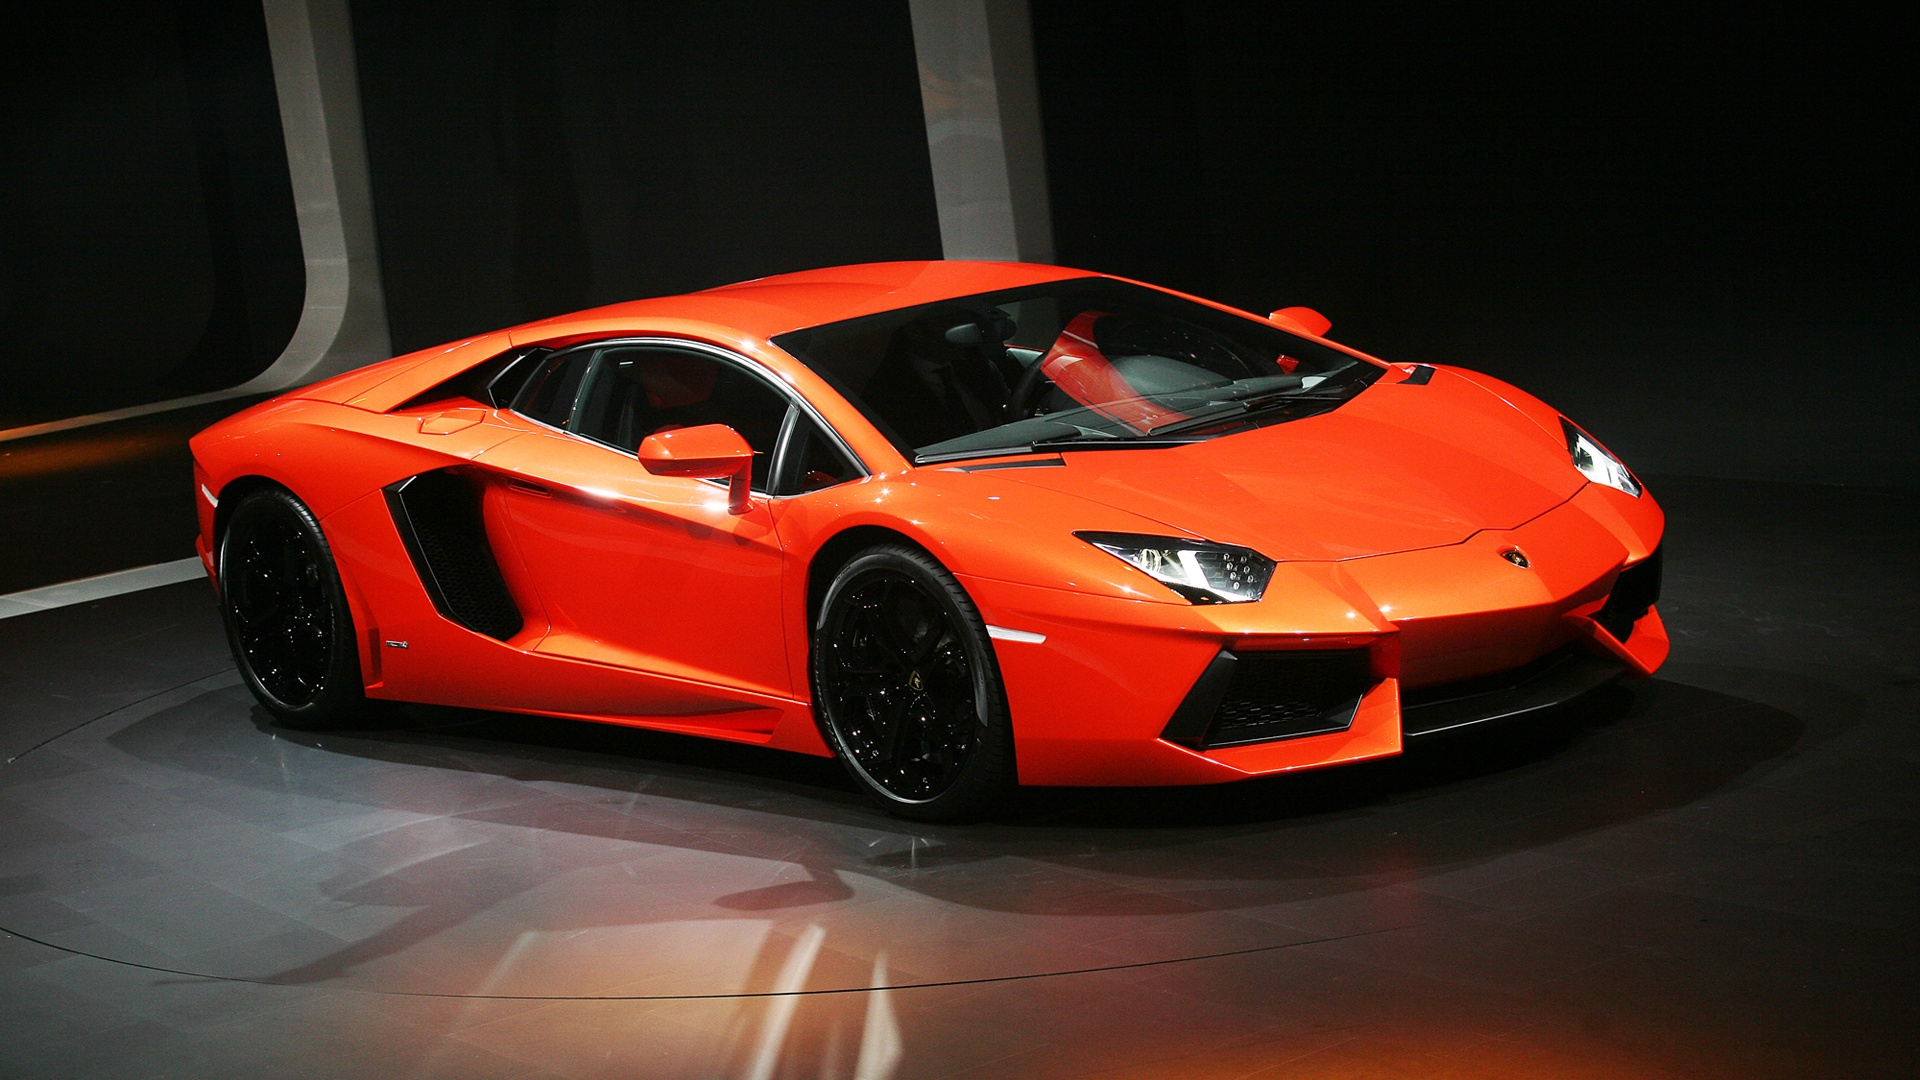 Aventador Wallpaper Car Wallpaper HD Desktop Wallpapers 1920x1080 1920x1080